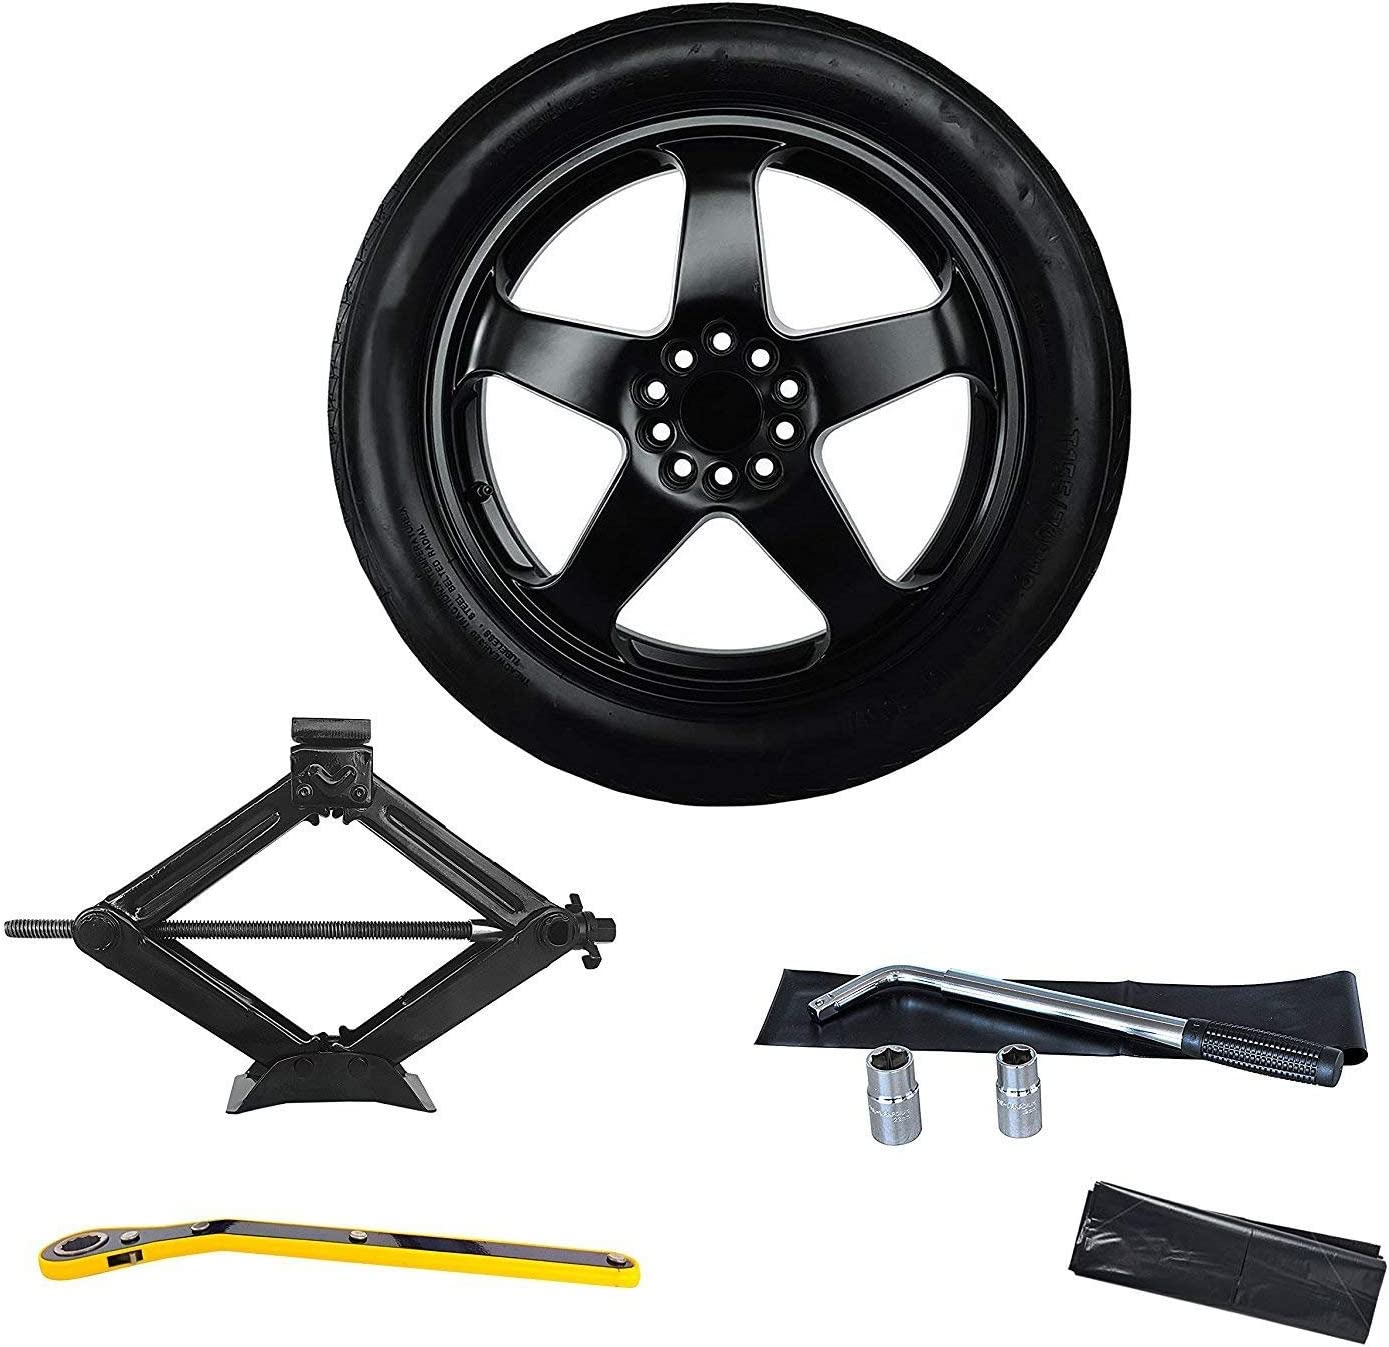 w//Wheel Spacer 2015-2020 Tesla Model X Complete Spare Tire Kit Modern Spare